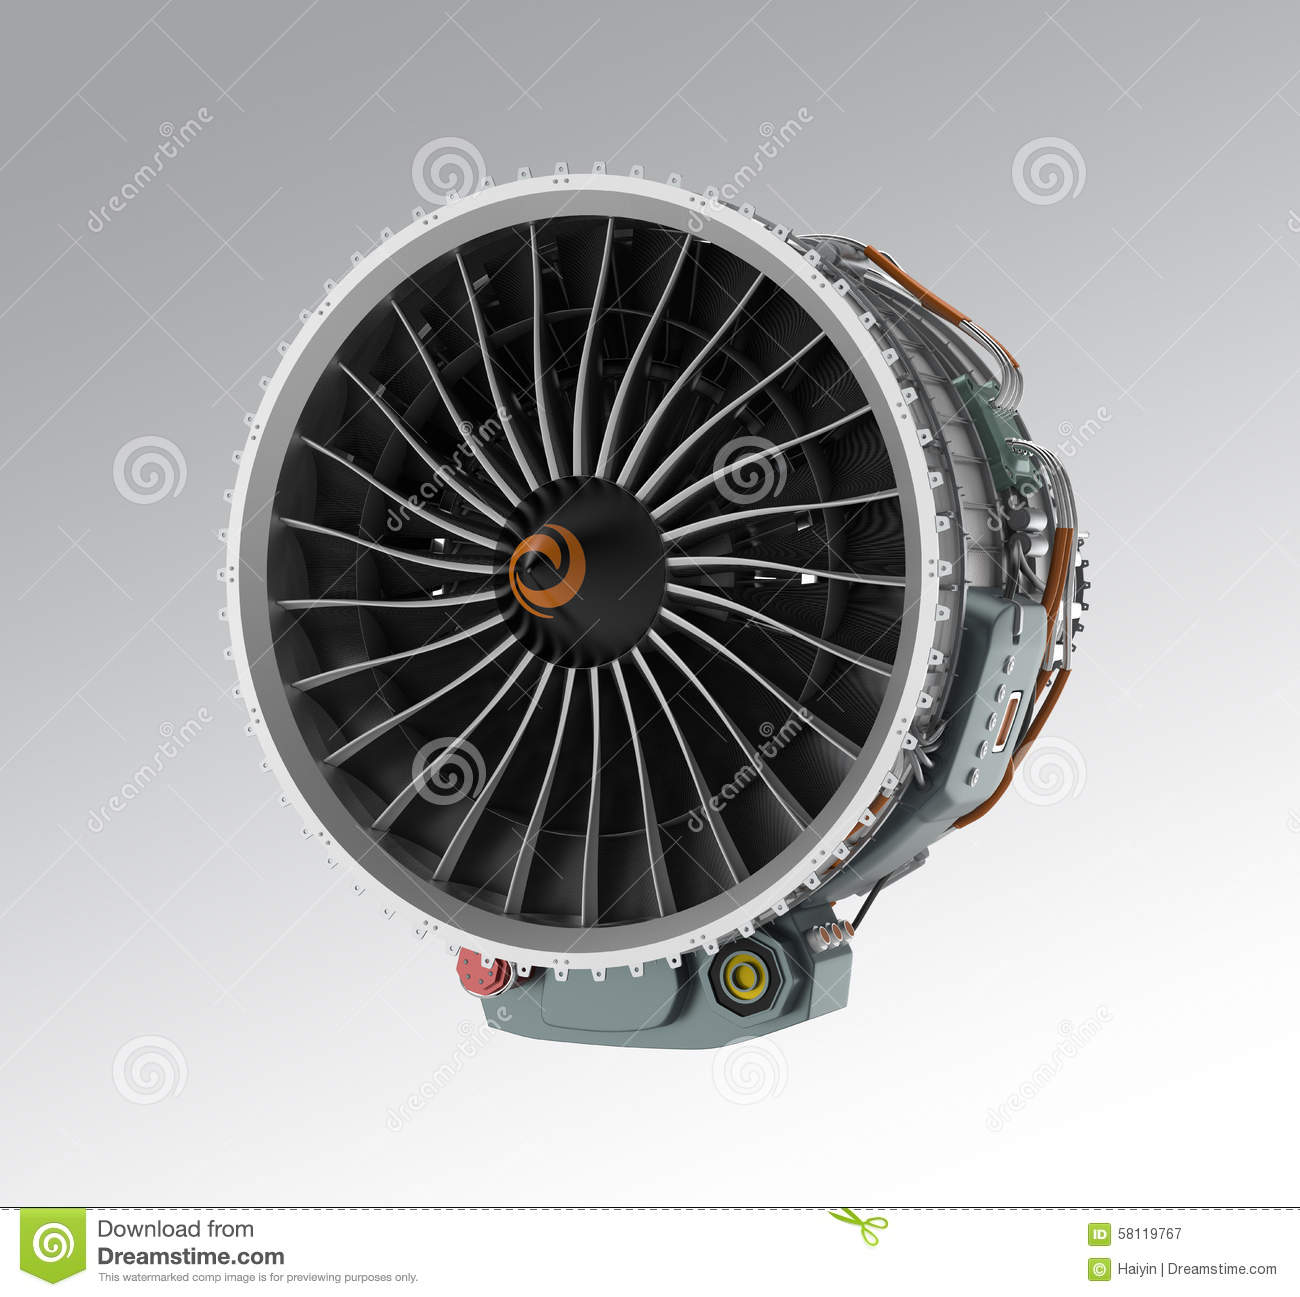 Micro jet engine for sale micro free engine image for for Jet motors mini for sale